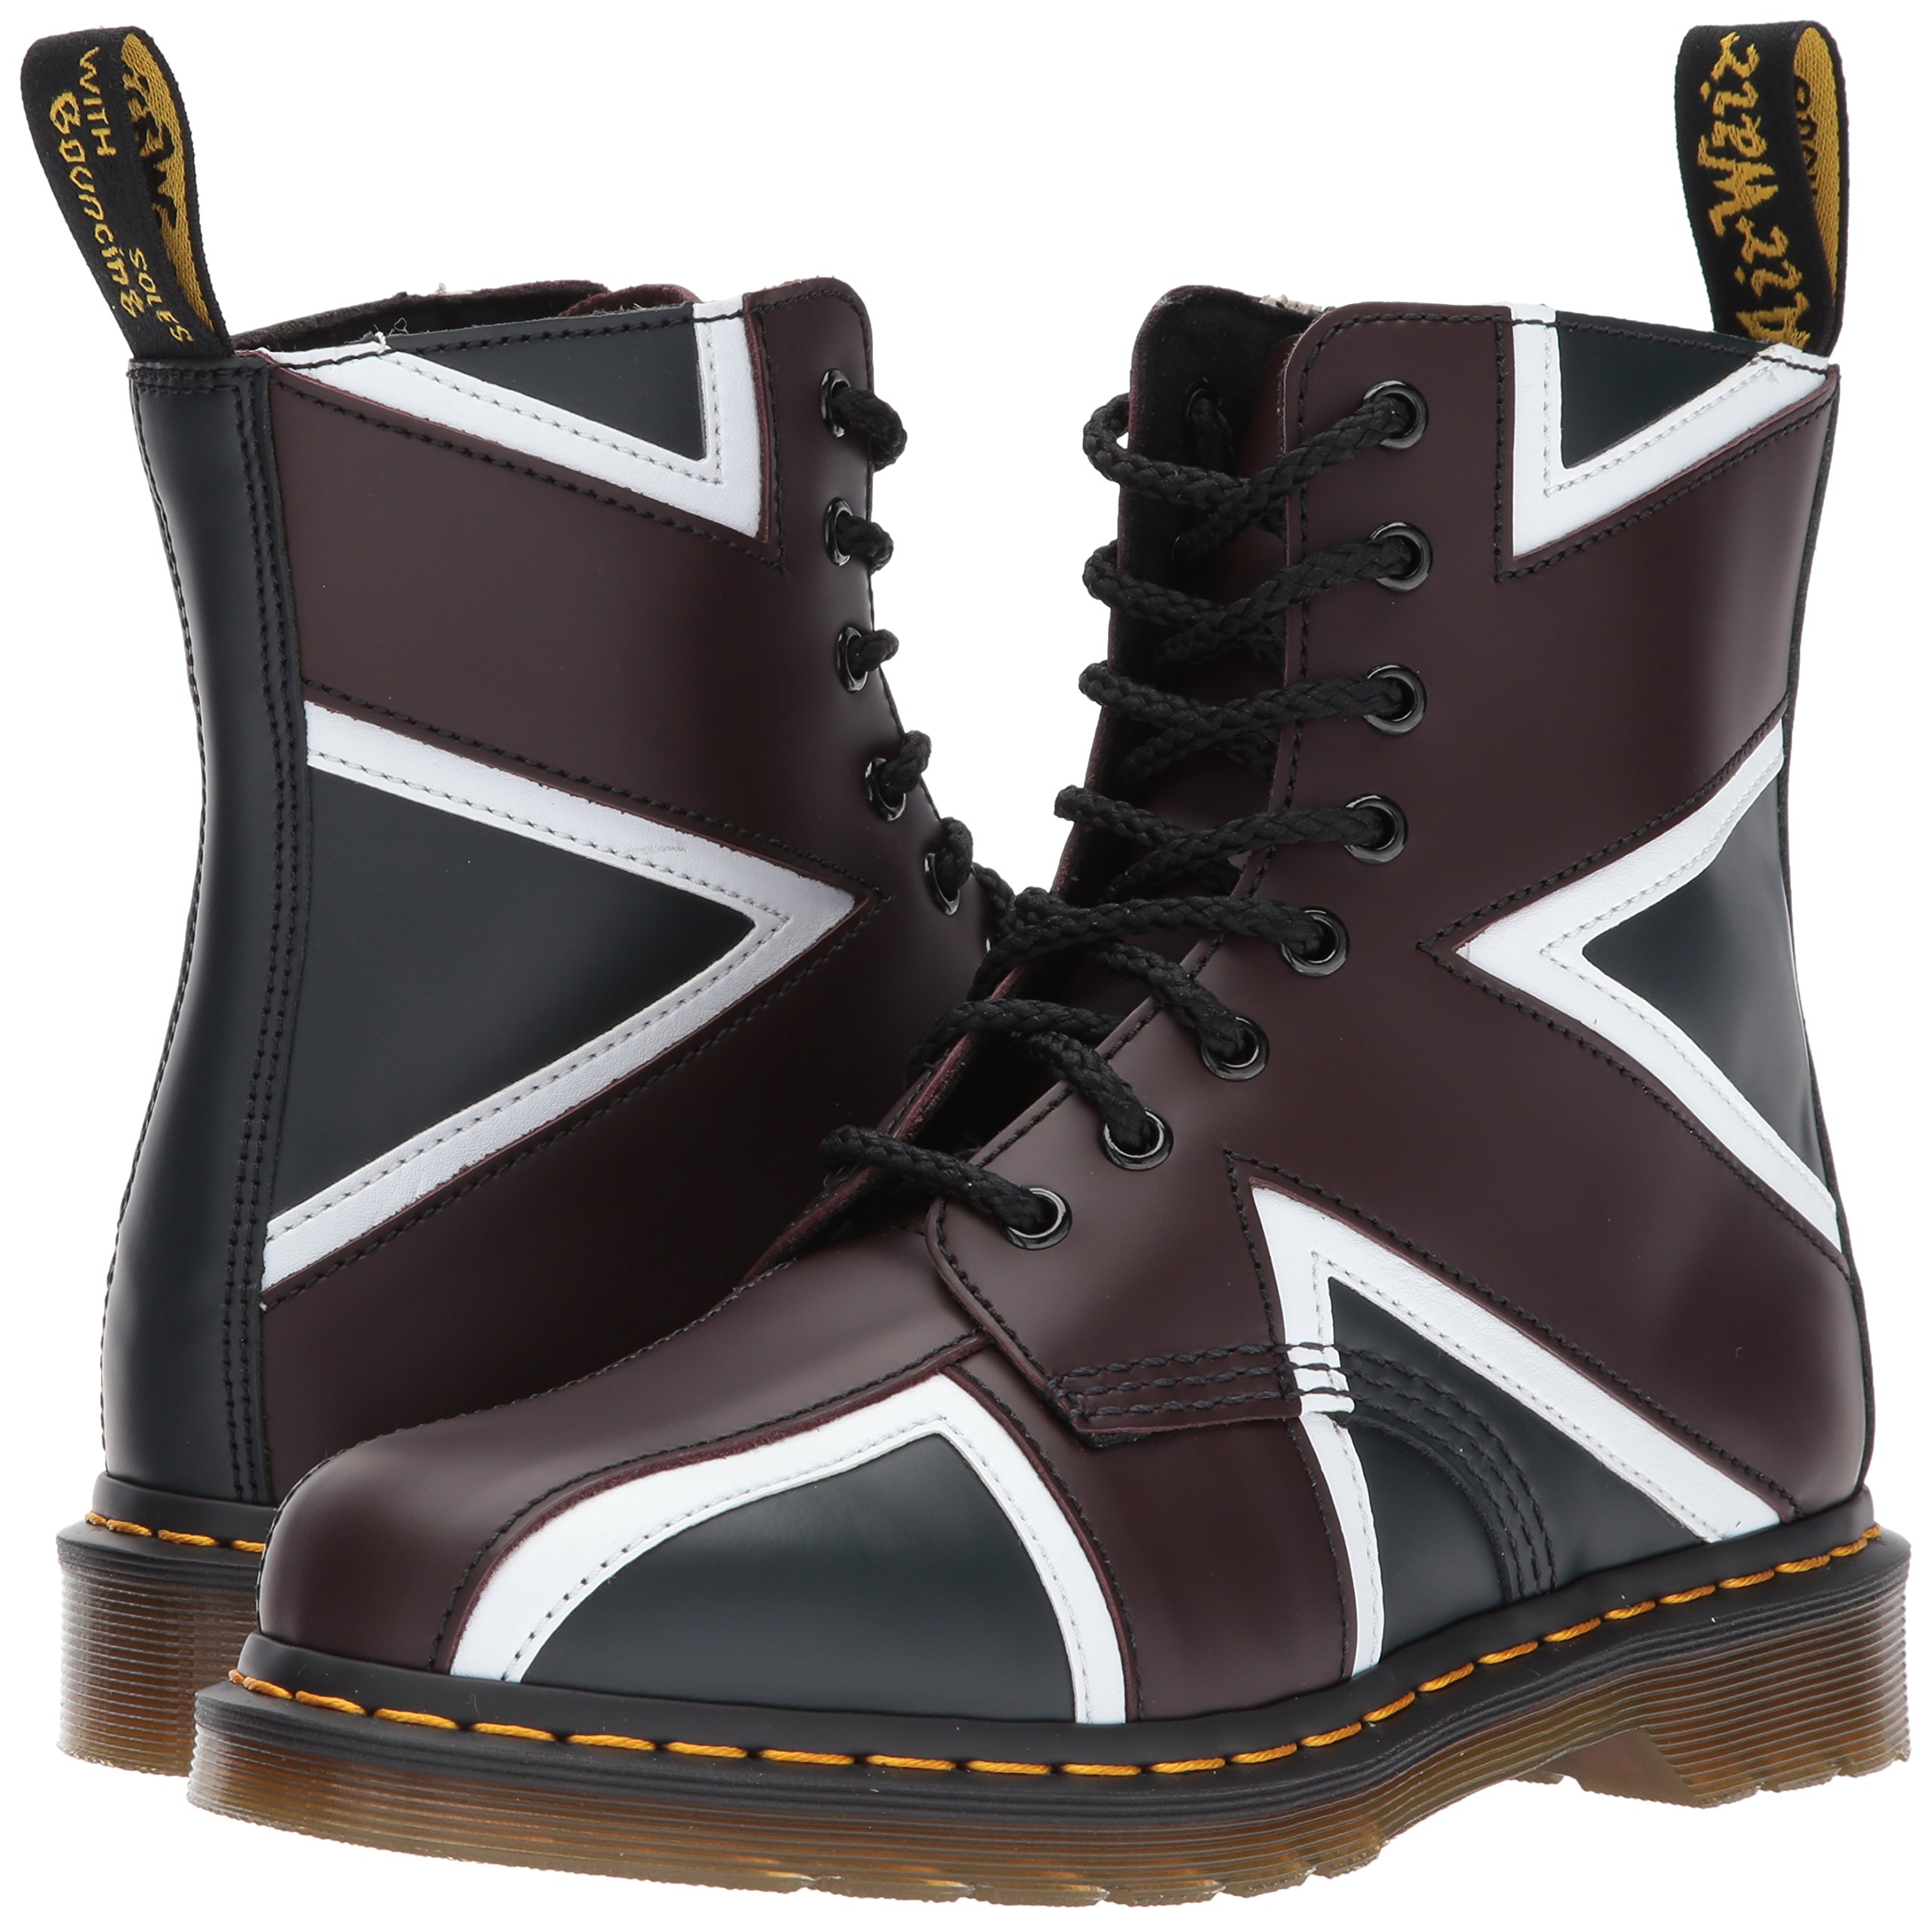 Buy Union Jack Doc Martens Now!